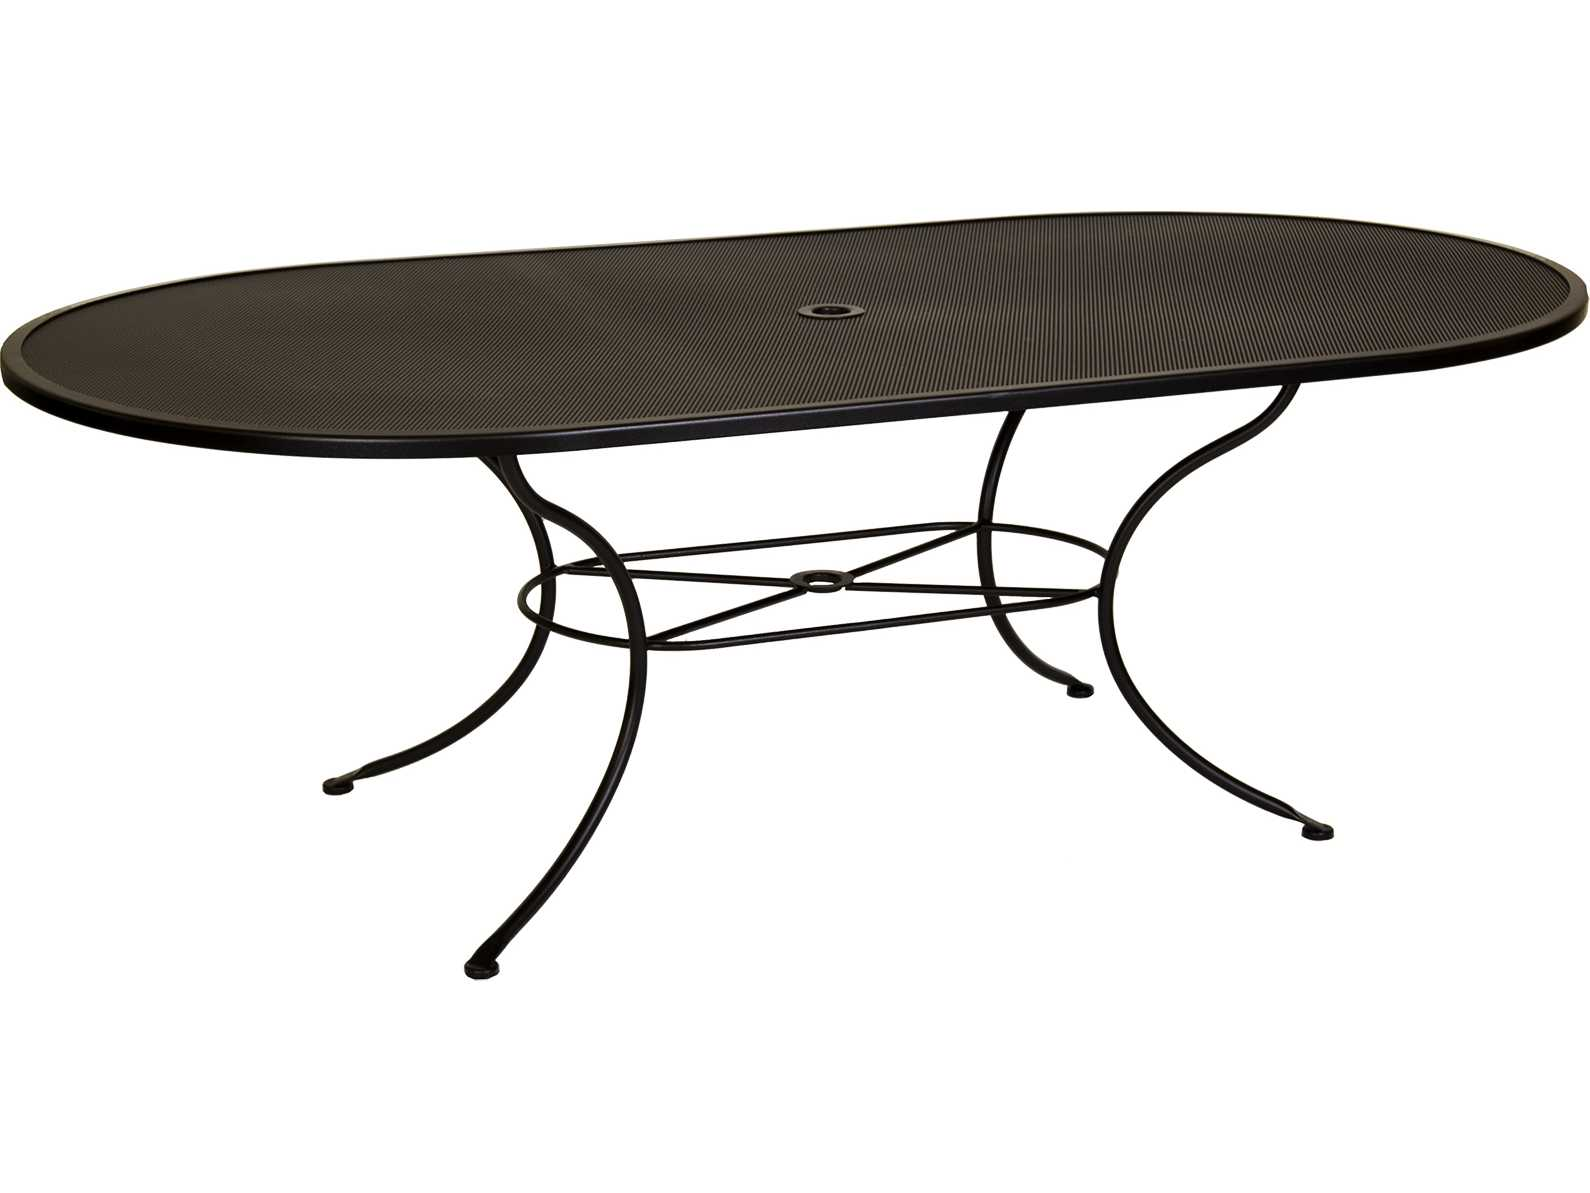 ow lee mesh wrought iron 84 x 44 oval dining table with umbrella hole ow4484ovmu. Black Bedroom Furniture Sets. Home Design Ideas